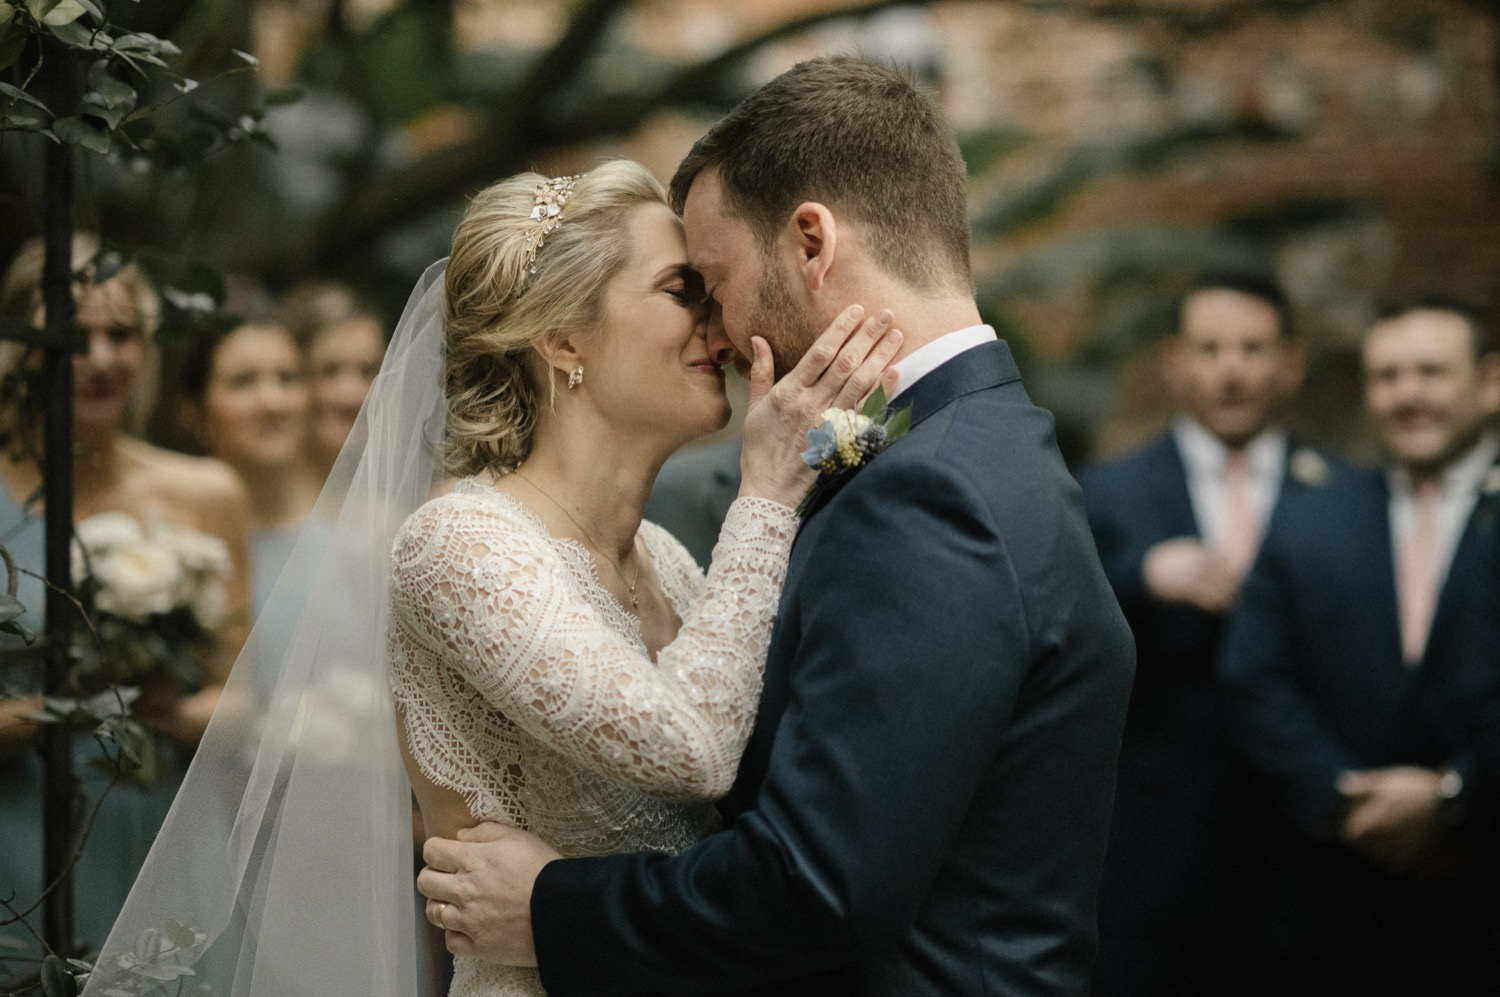 Kirstin and Drew exchange their first kiss at their romantic New Orleans Pharmacy Museum wedding.